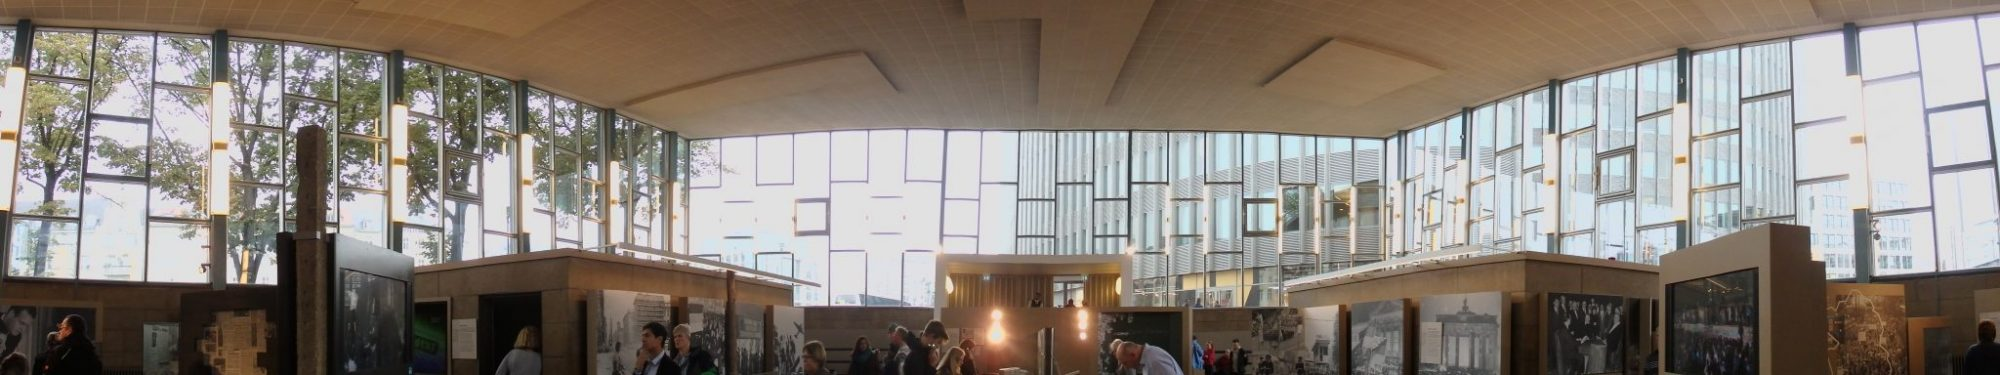 a panoramic view of the Palace of Tears in Berlin